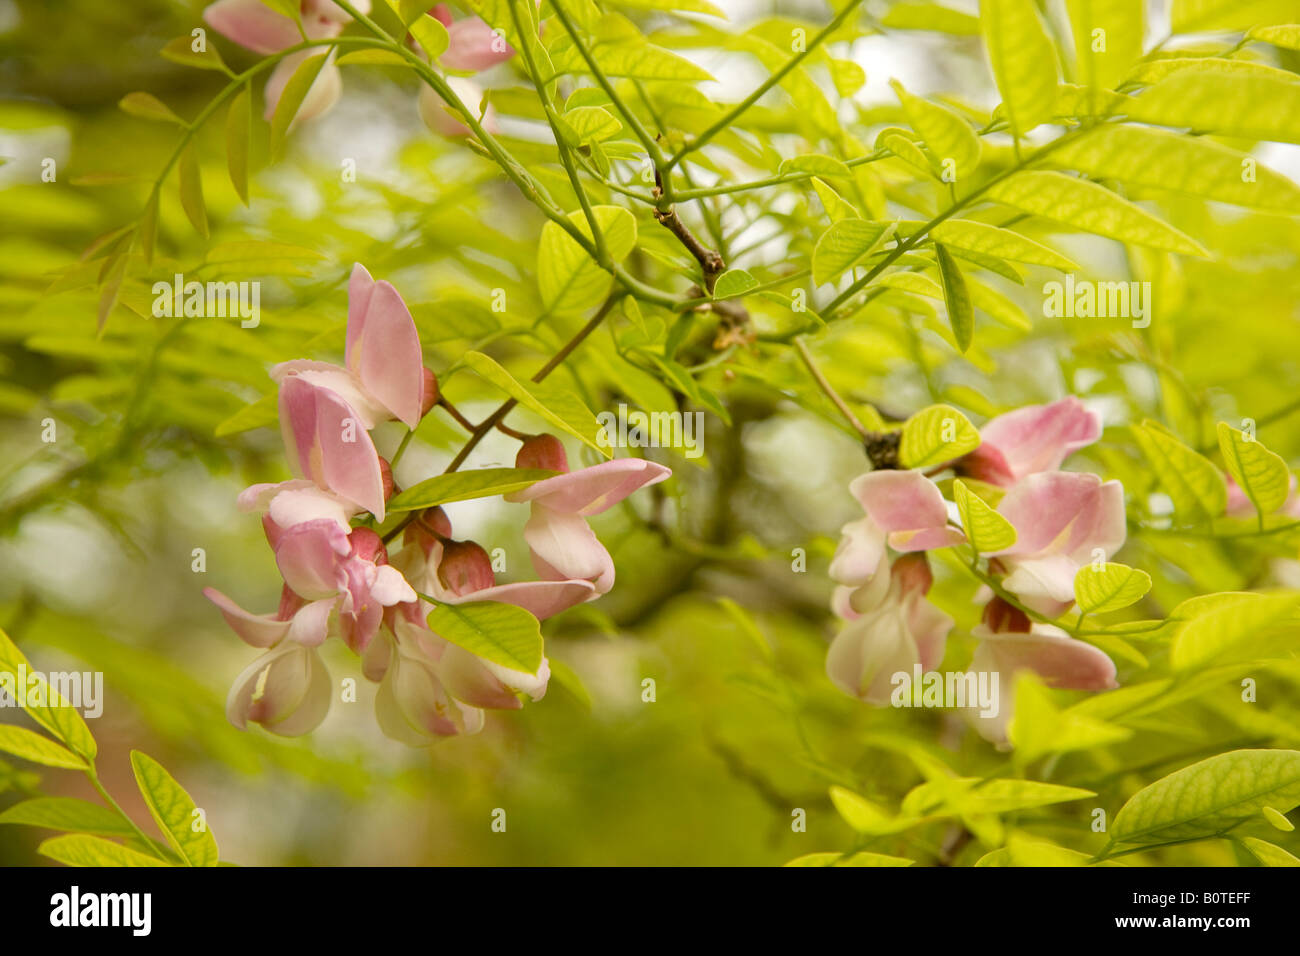 Pink locust pink robinia robinia stock photos pink locust pink pink flowers and new spring leaves of false acacia tree robinia pseudoacacia decaisneana stock image mightylinksfo